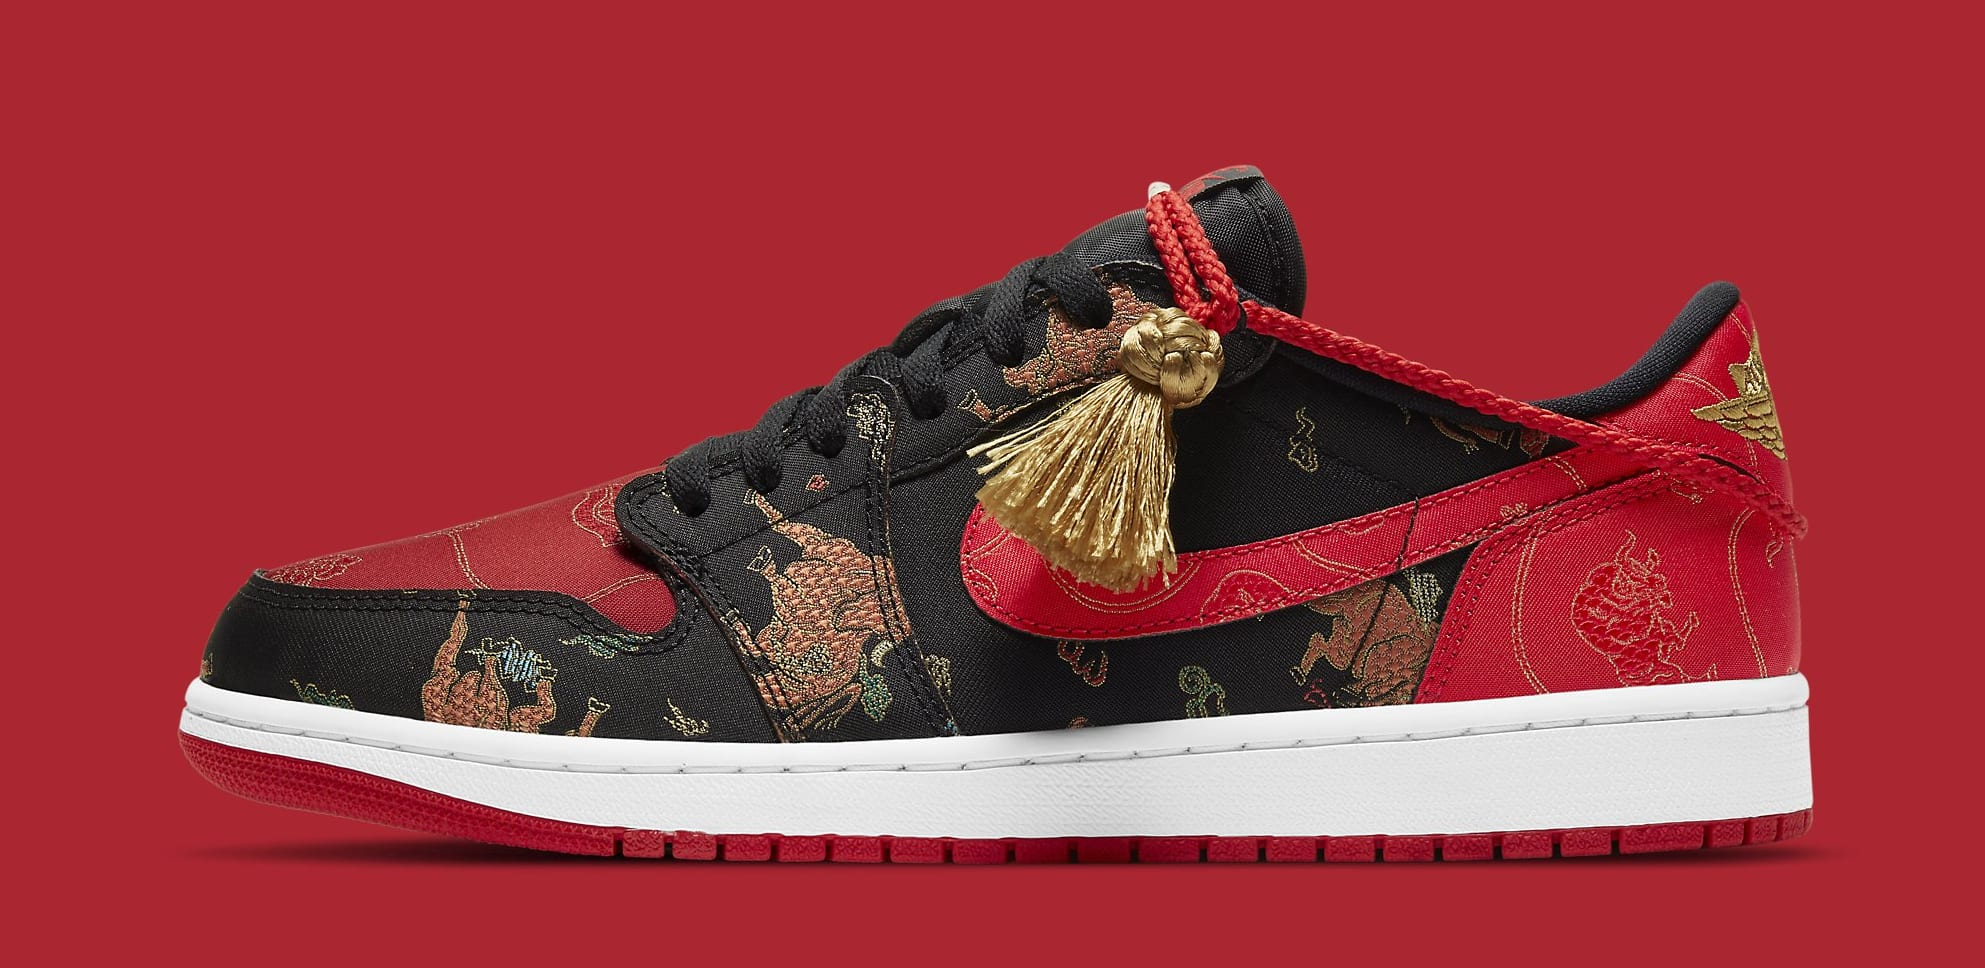 Air Jordan 1 Retro Low OG 'Chinese New Year' DD2233-001 Lateral